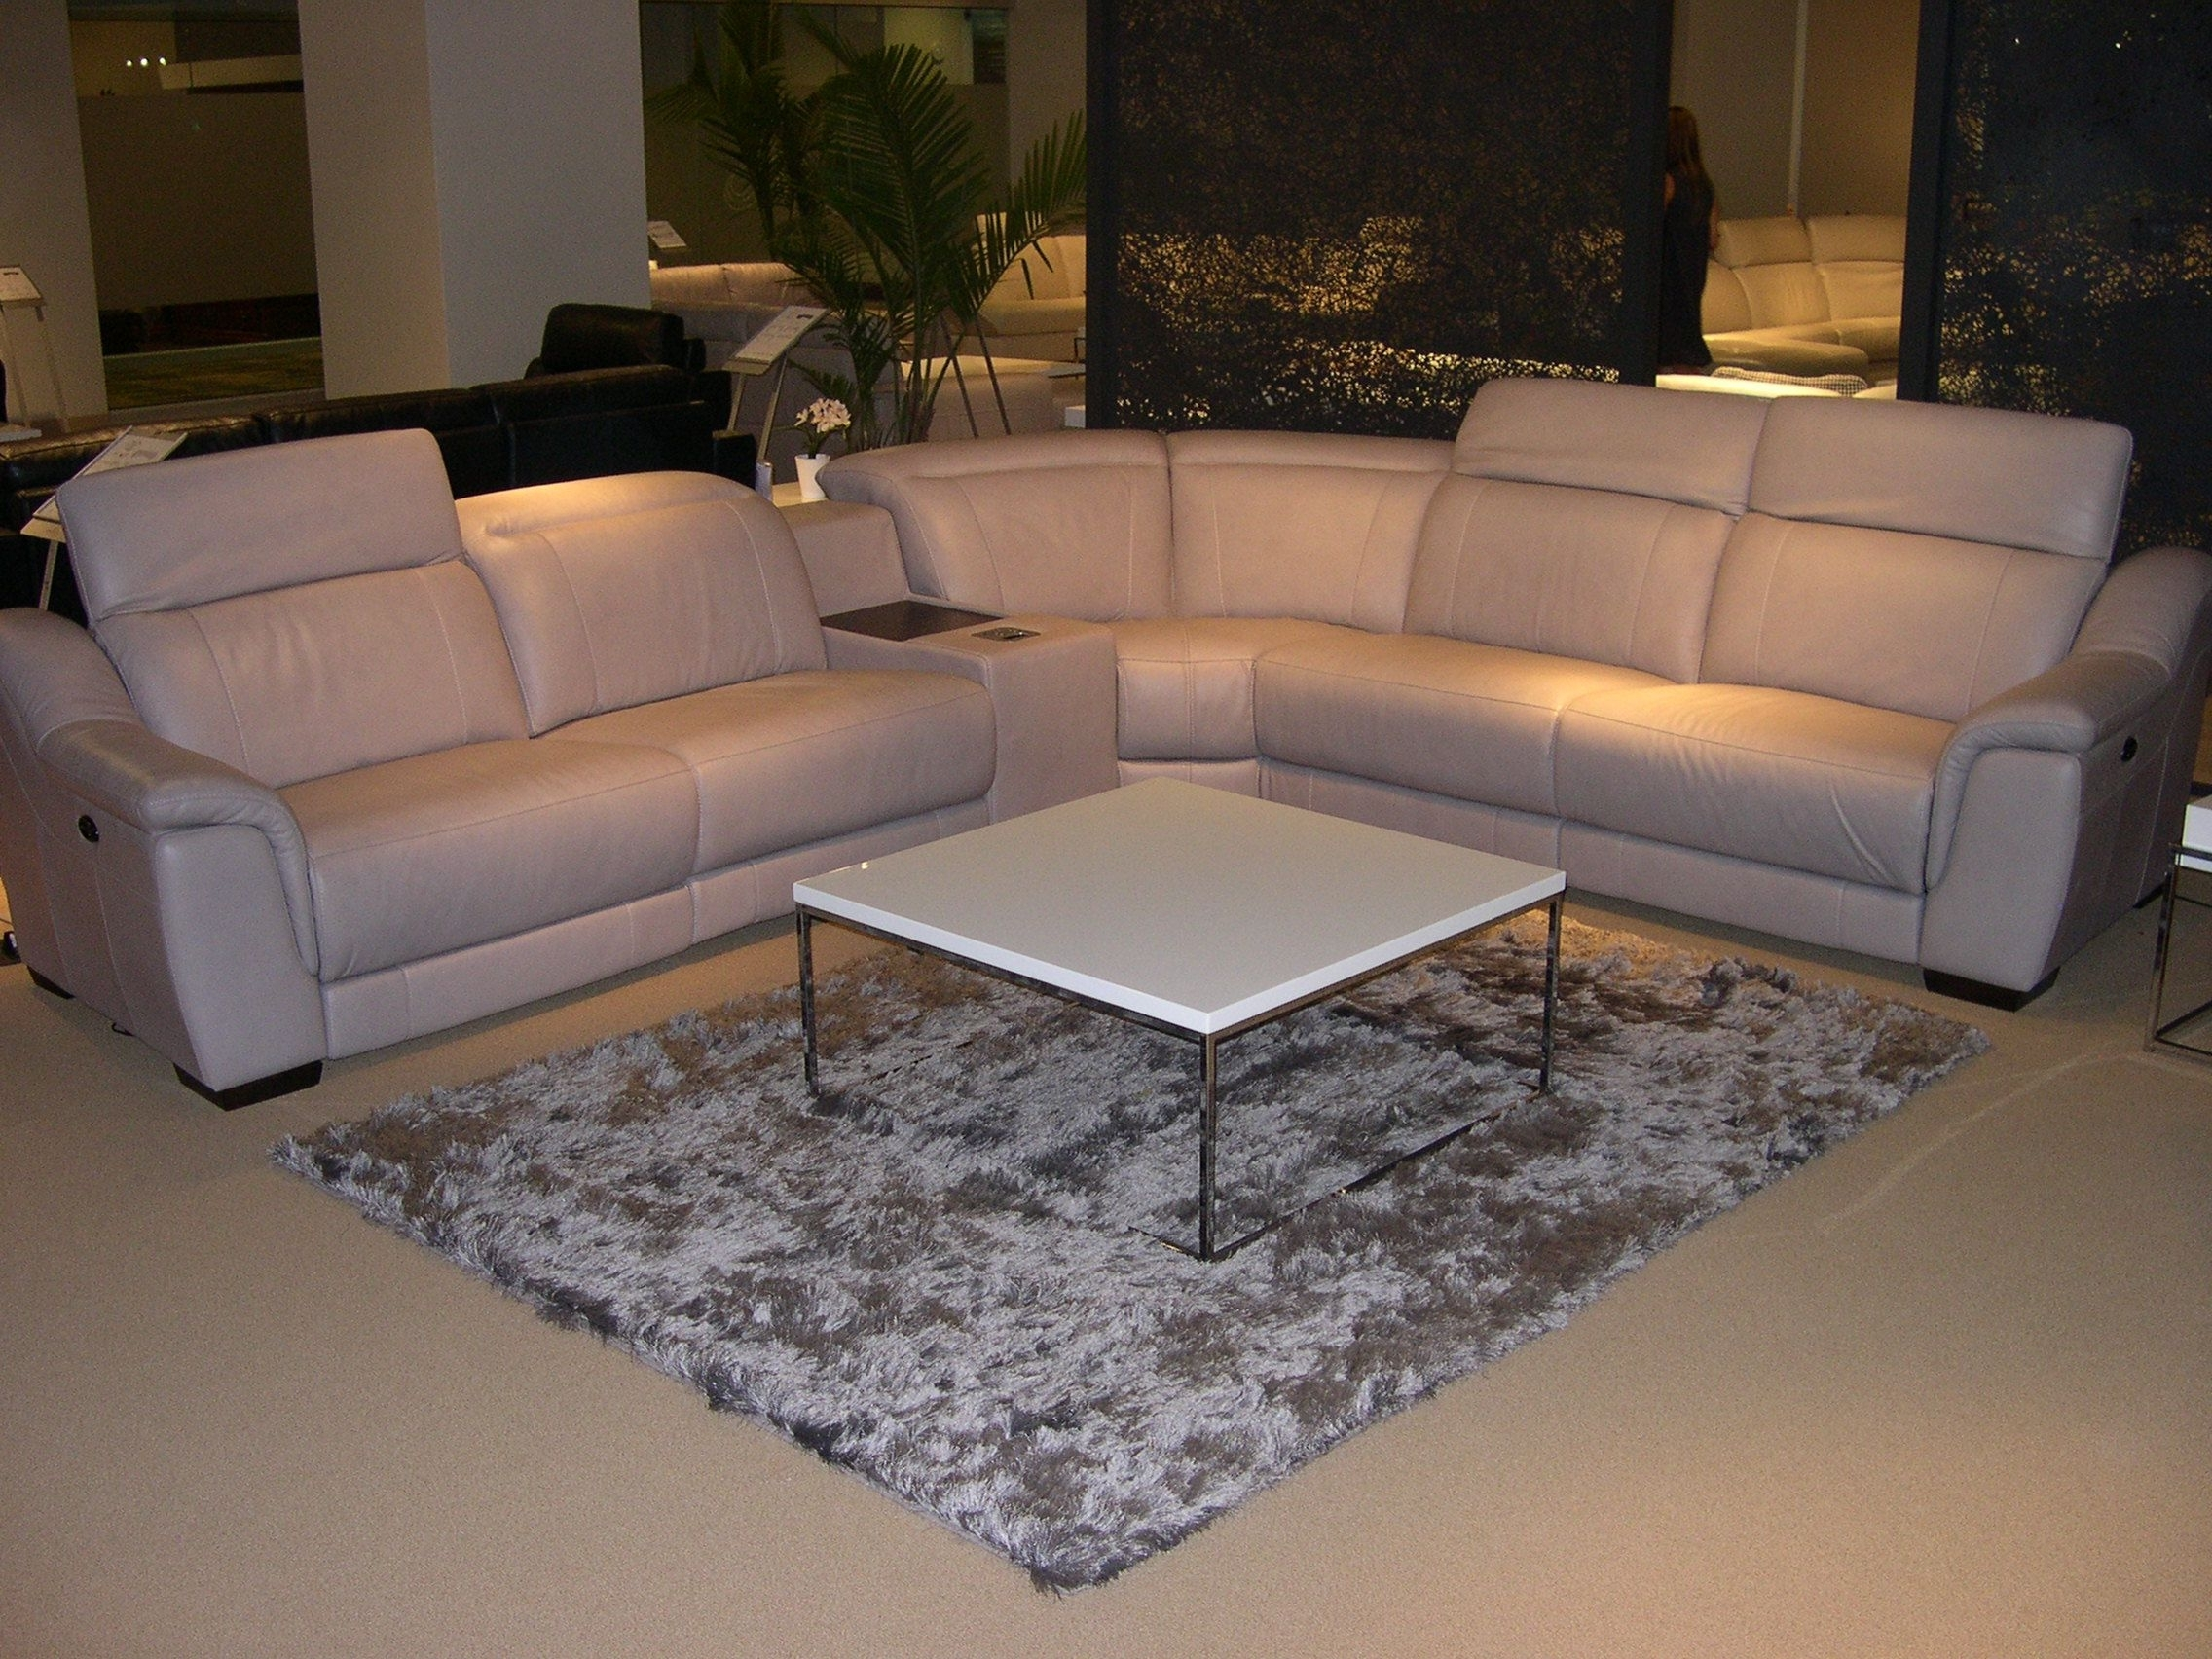 Las Vegas Sectional Sofas Pertaining To 2019 Htl Leather Sectional – Adjustable Headrests (View 12 of 20)